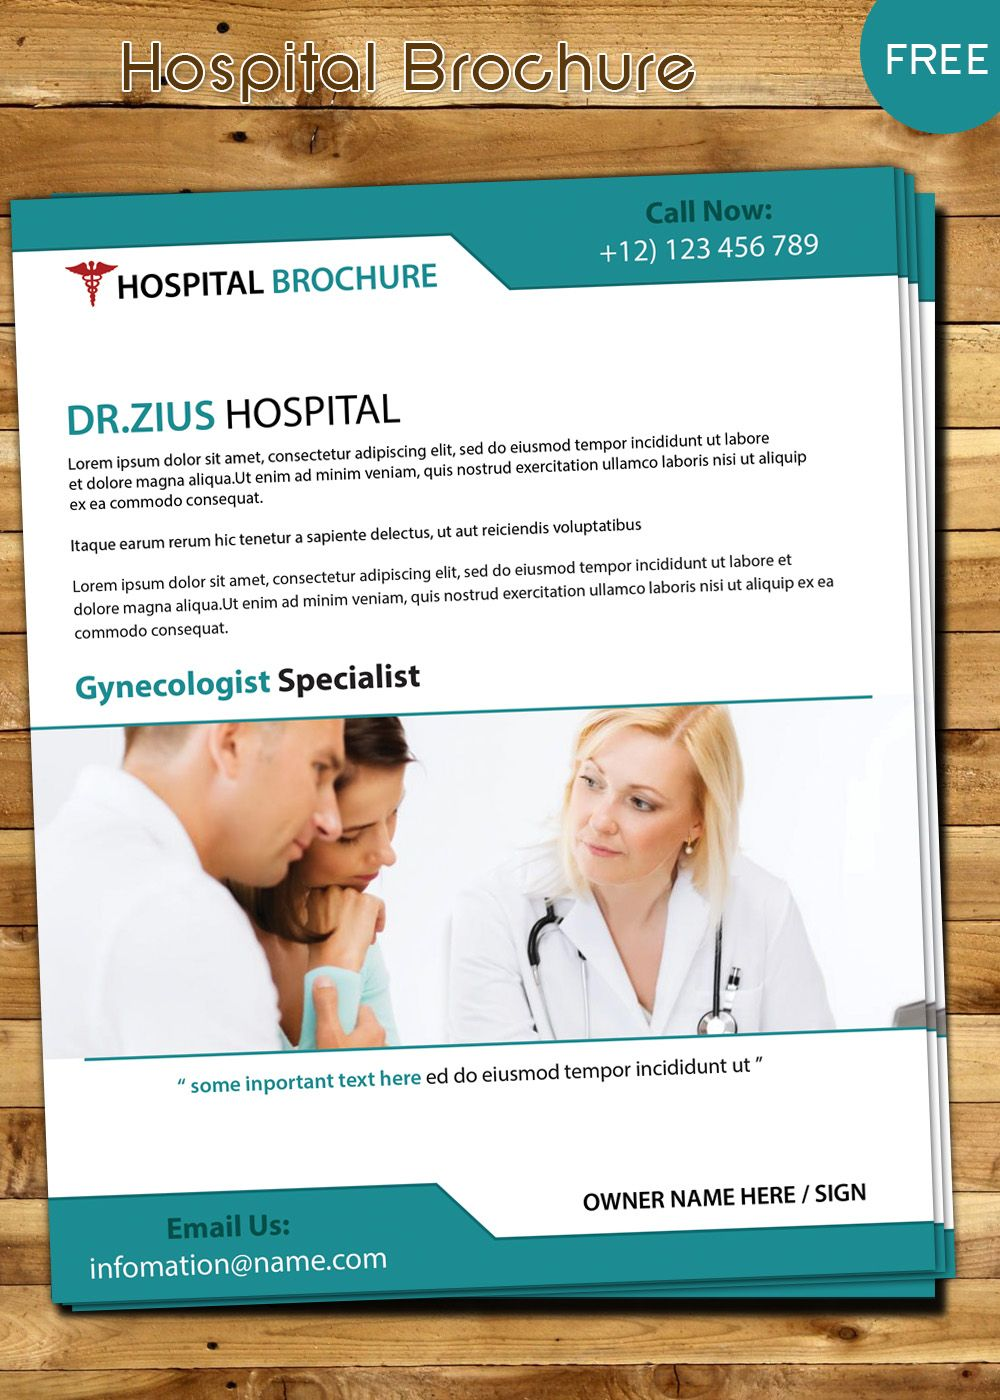 Free Hospital Brochure Template Download  Brochure Design